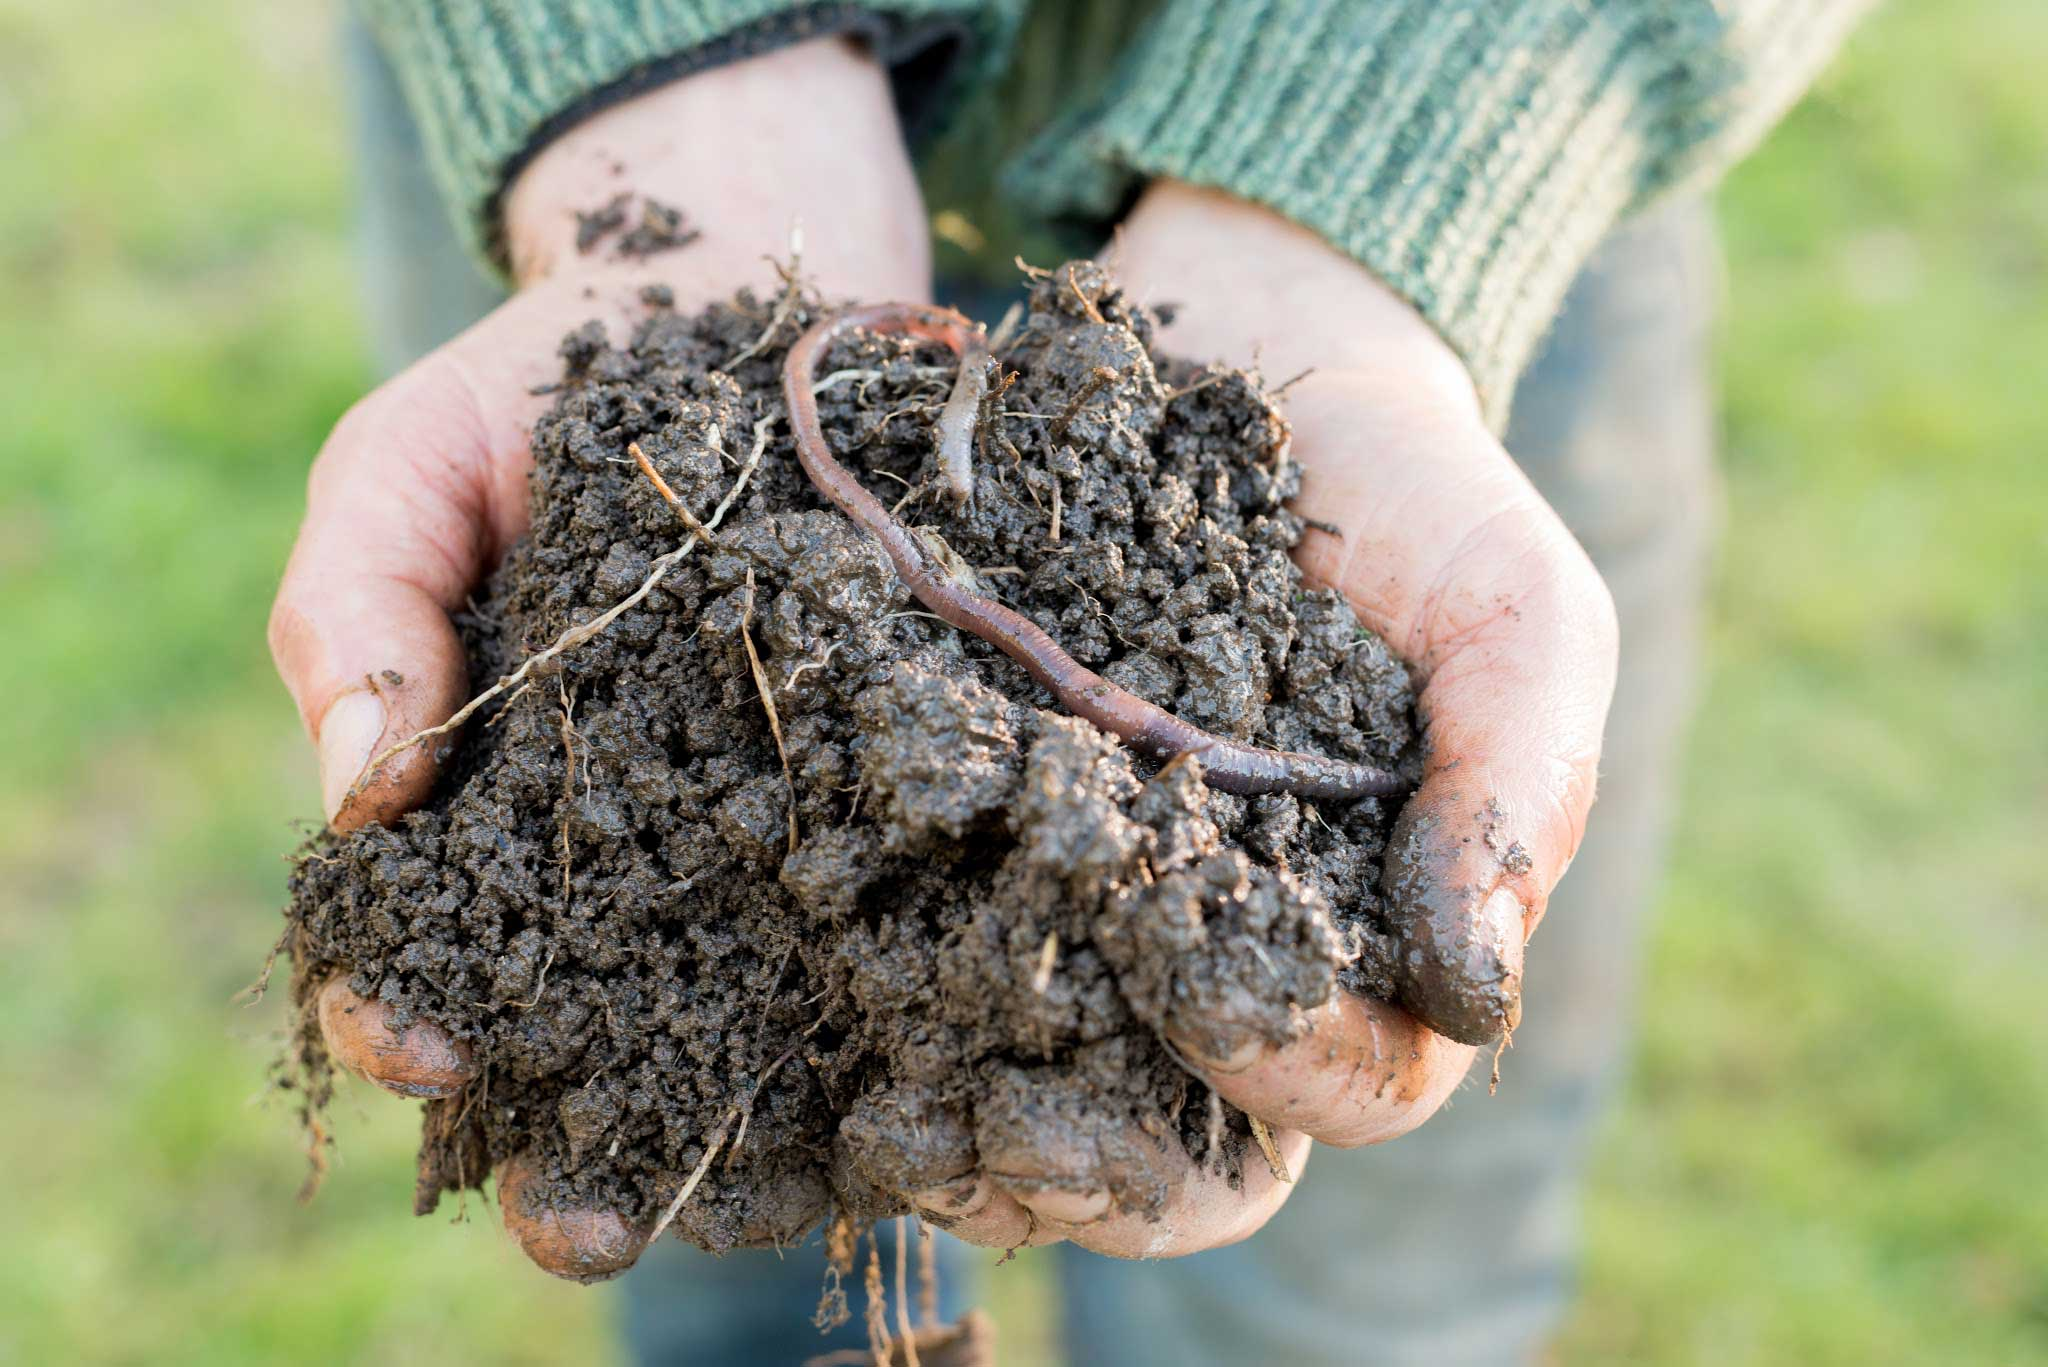 person standing outdoors holding dirt with live earthworms in two hands